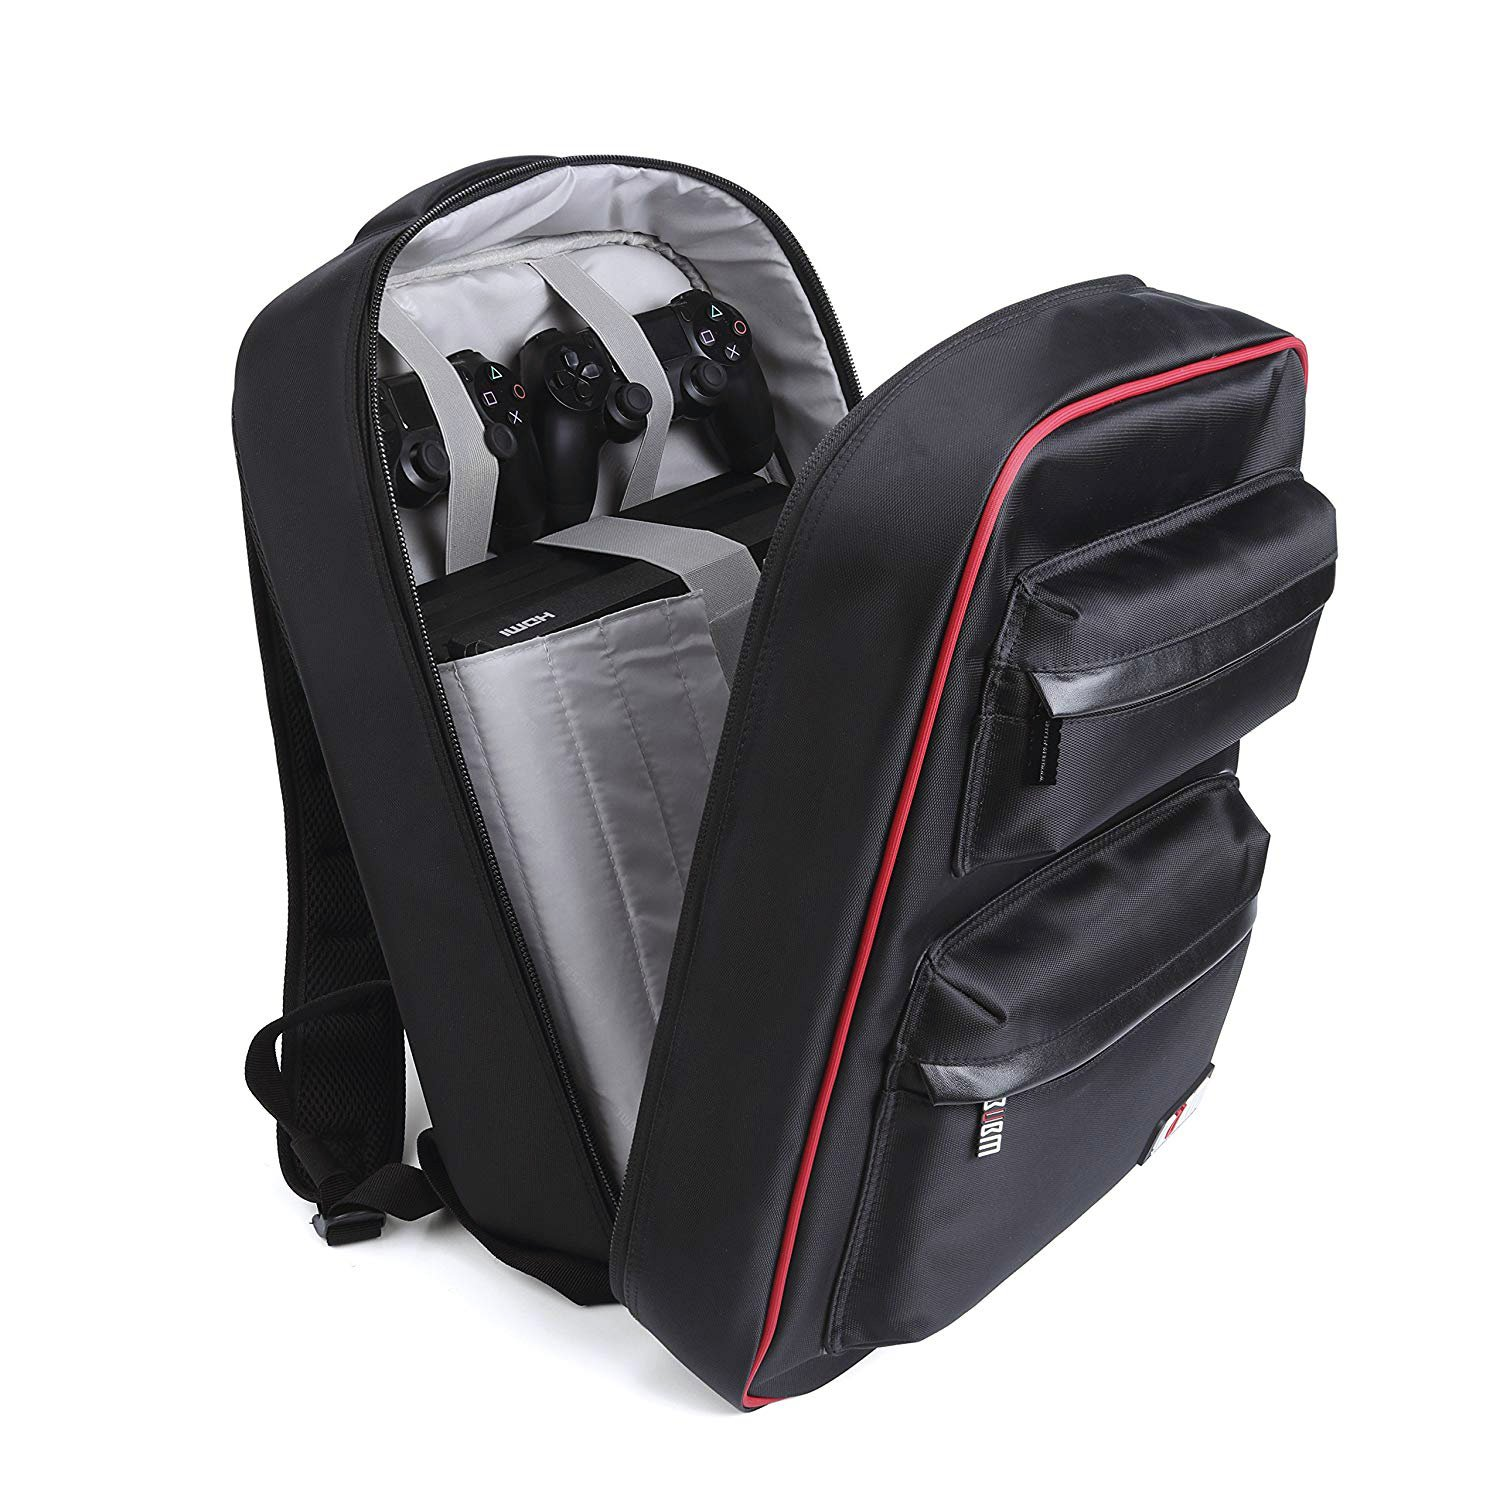 Universal Gaming Backpack,PS4 Backpack Travel Game System Carrying Case Storage Bag for Sony Playstation 4/PS4 Slim/PS4 Pro/Xbox ONE/XB1S/Xbox ONE X/WII U/PS3/XBOX 360 Systems and Accessories,Black